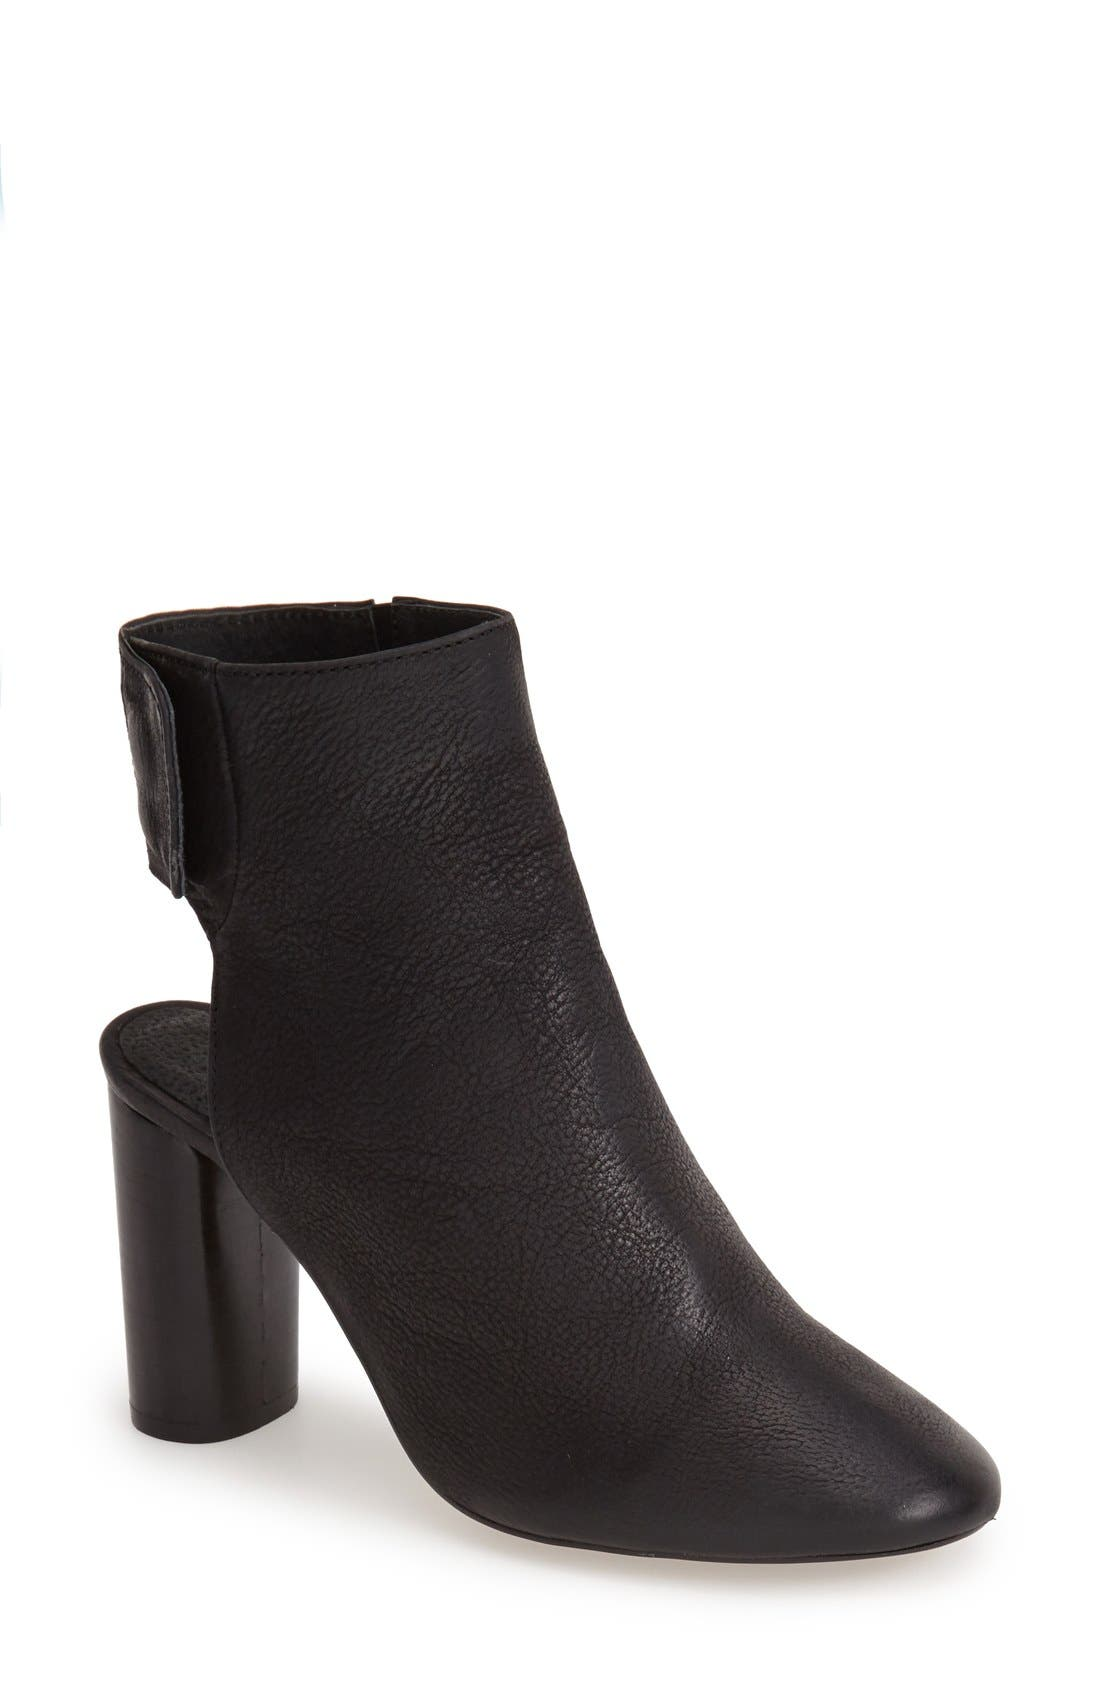 Main Image - Topshop 'Maid' Leather Ankle Boot (Women)